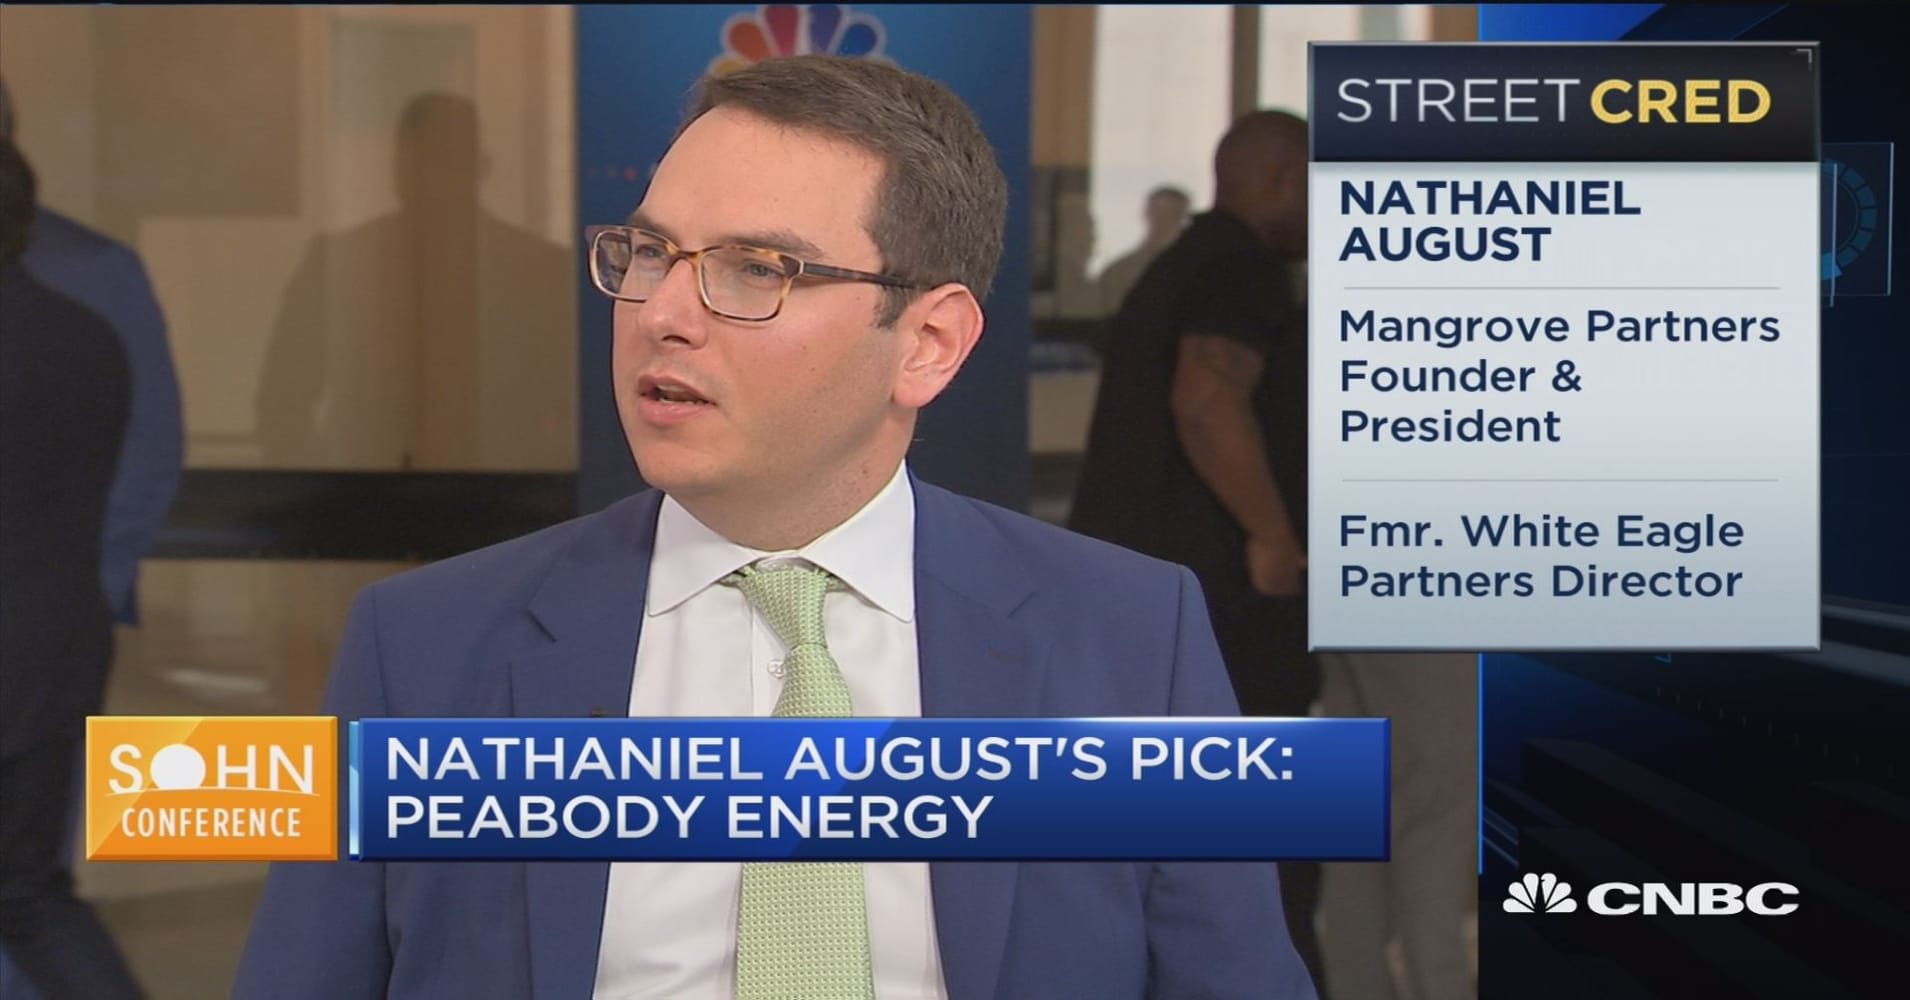 Mangrove Partners\' Nathaniel August on his best idea at Sohn